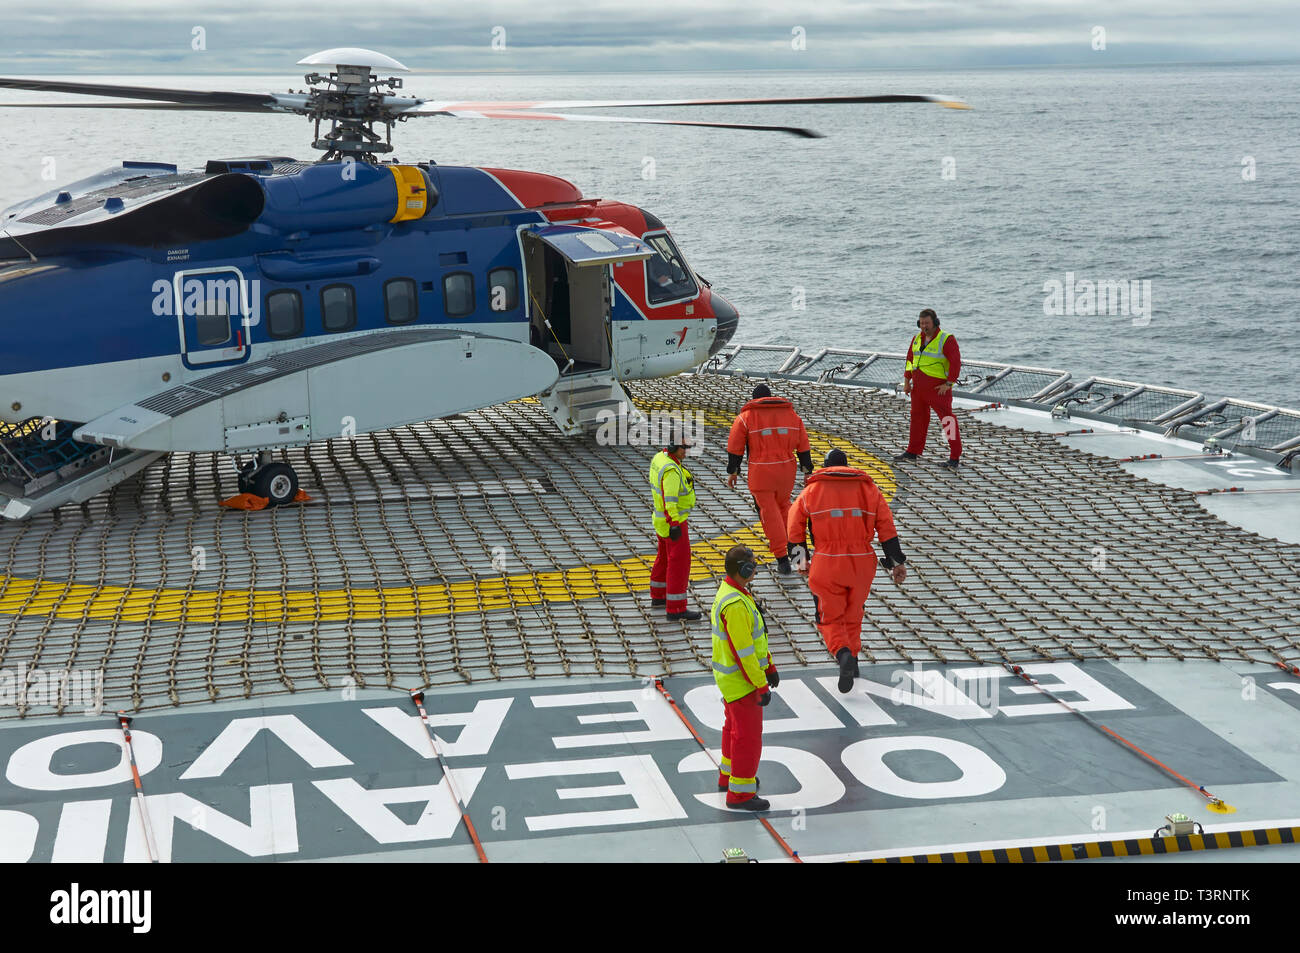 A CHC S92 Sikorsky helicopter on the deck of a Seismic Ship in the Norwegian North Sea conducting Crew Change for 2 Passengers. Norway - Stock Image